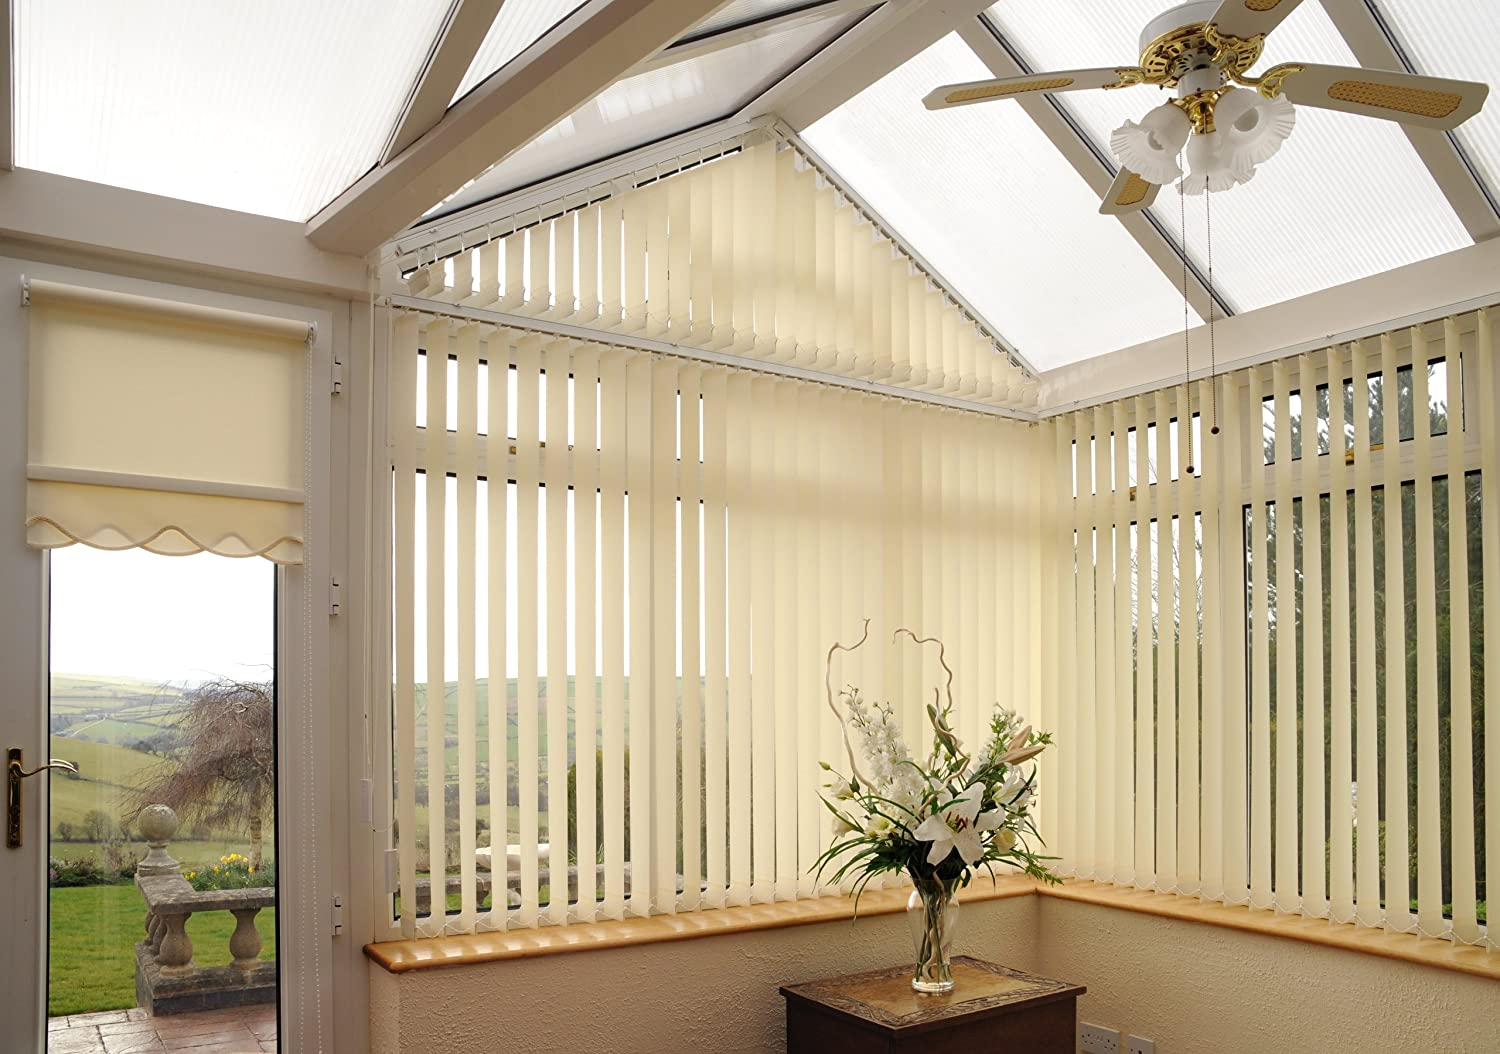 Complete Made To Measure Vertical Blind within 2500mm wide x 2500mm drop 35 Colours,Free Delivery Beautiful Blinds Direct